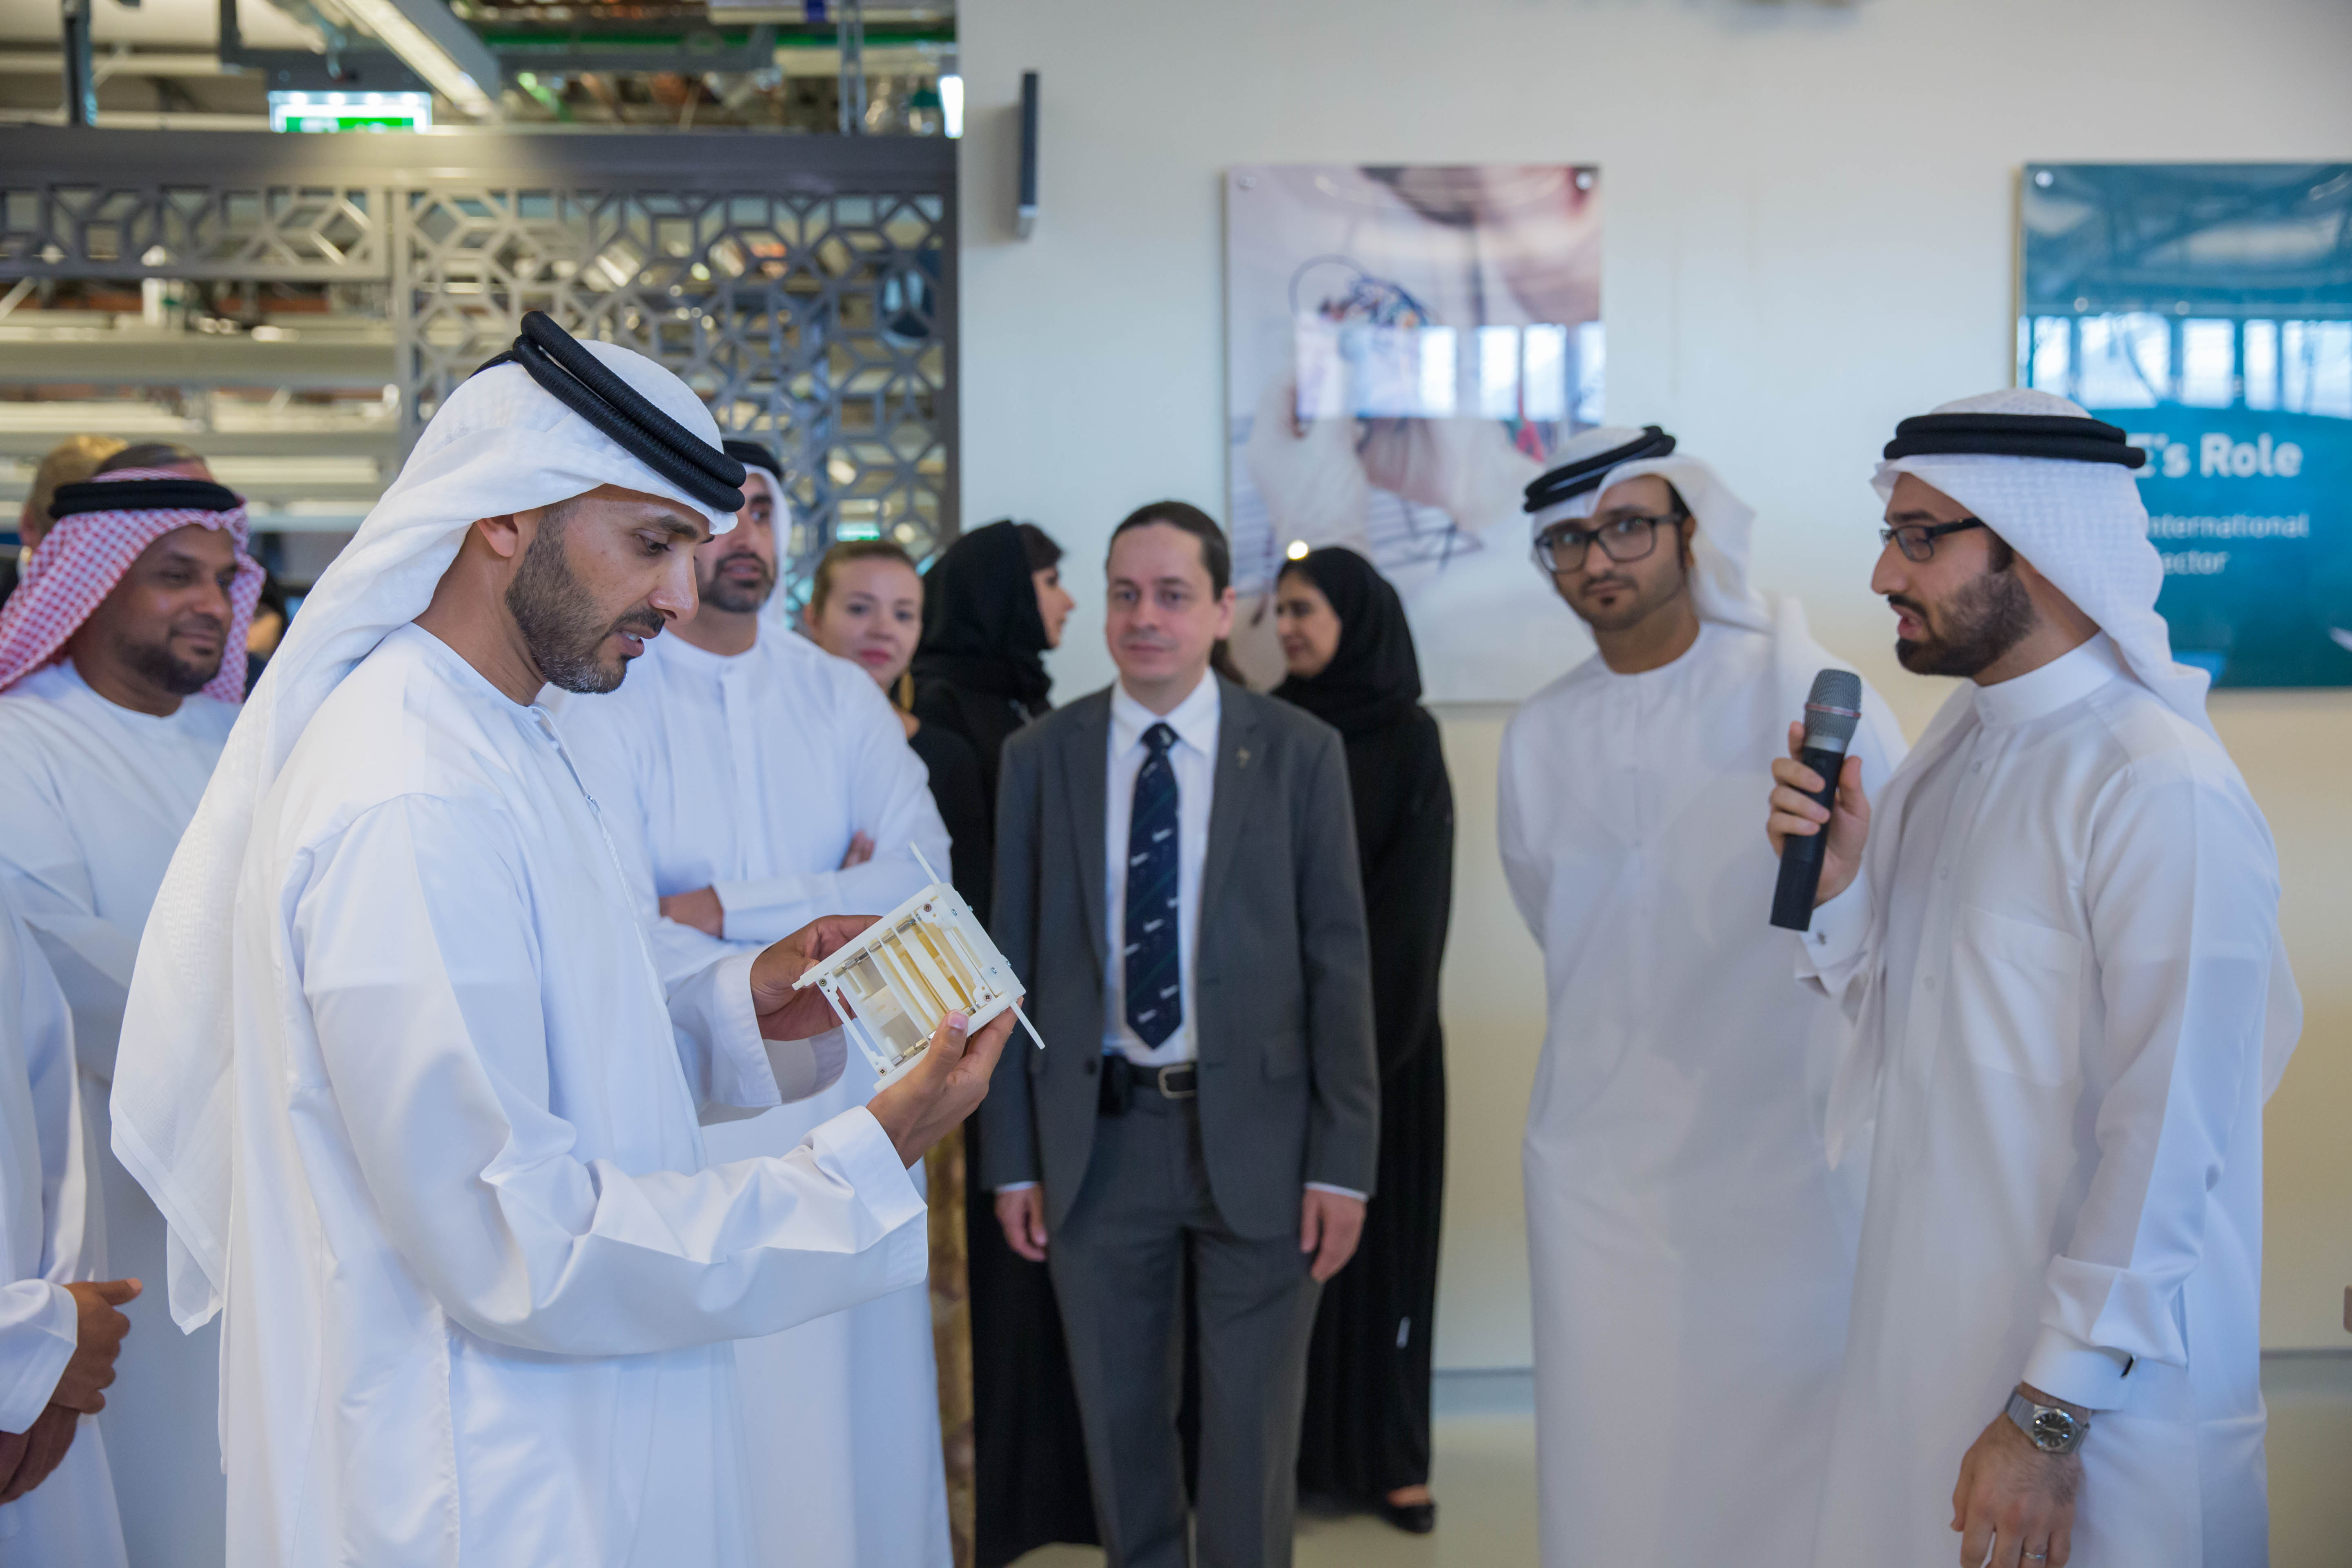 2 yahsat space laboratory launched at masdar institute